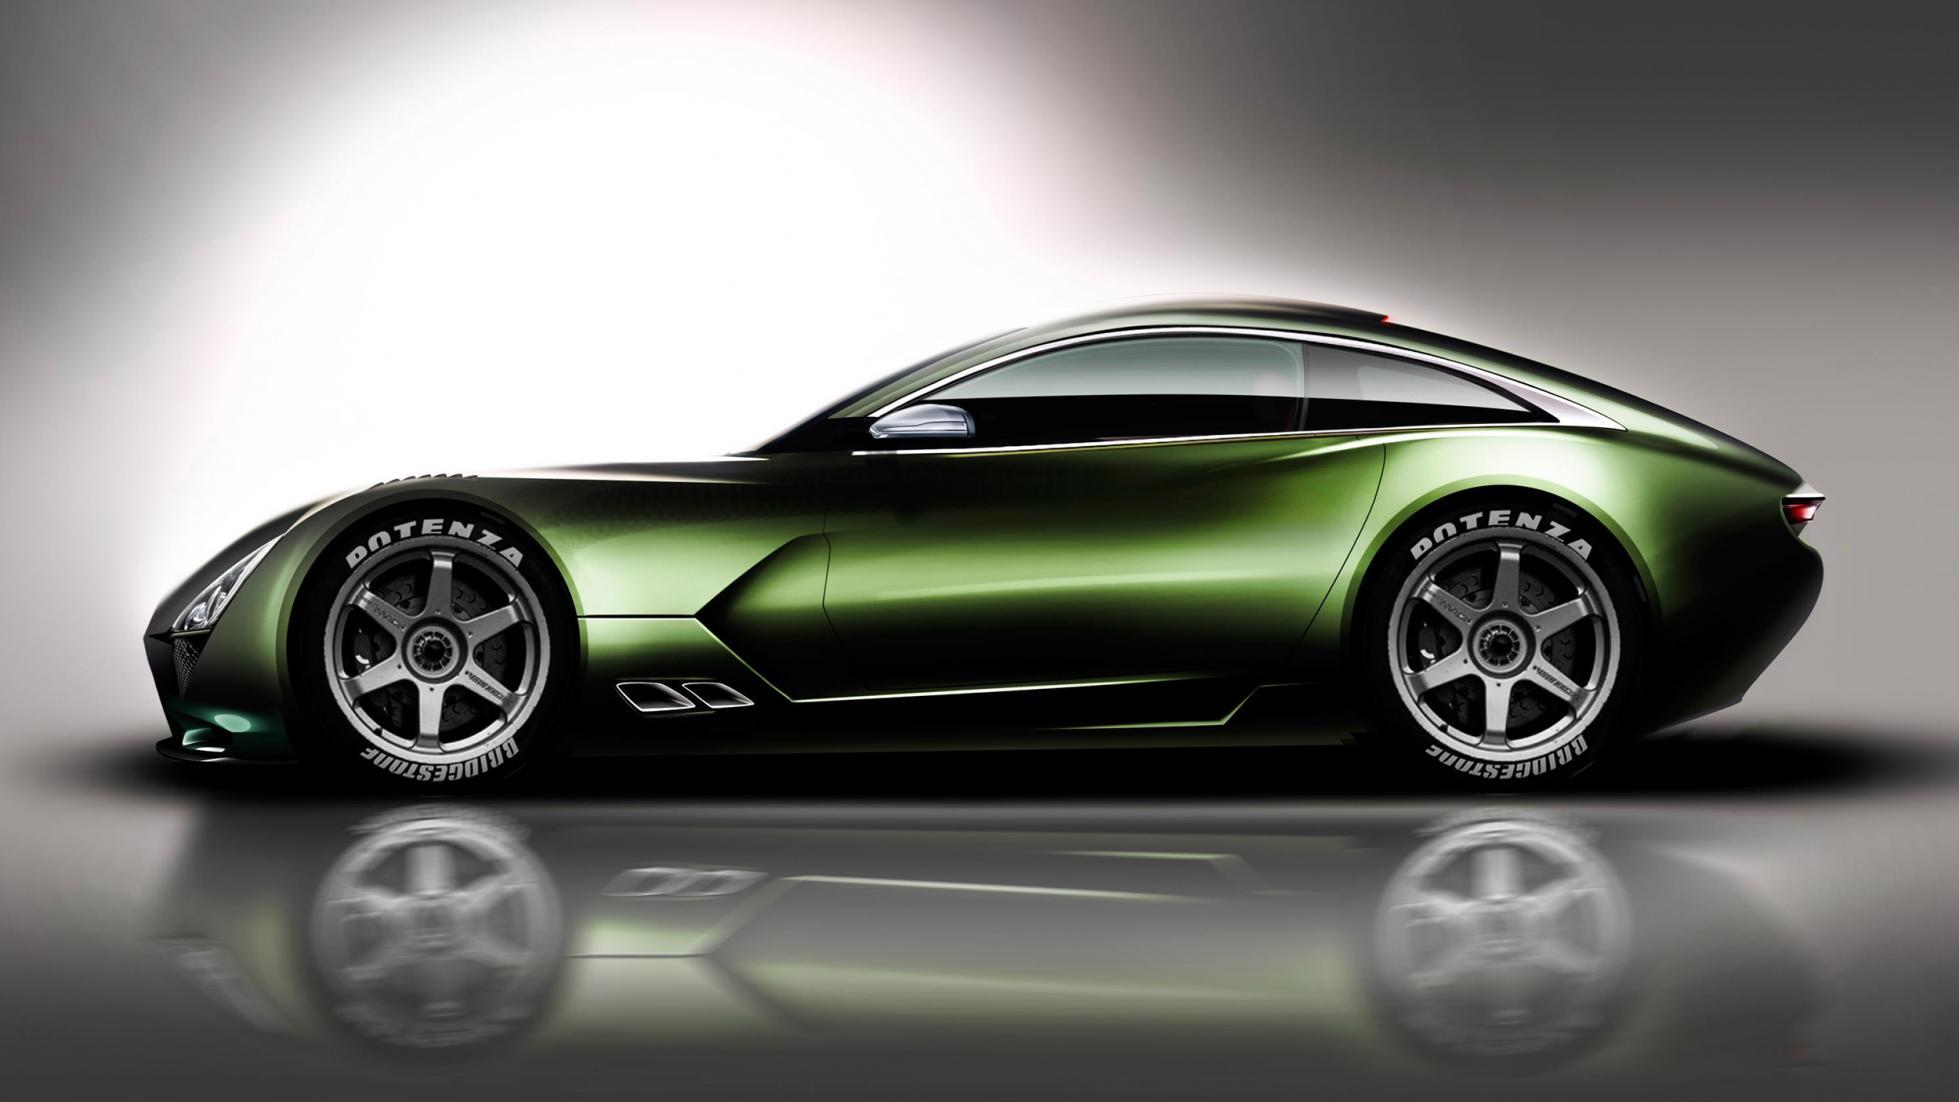 Tvr To Unveil New Supercar At Goodwood